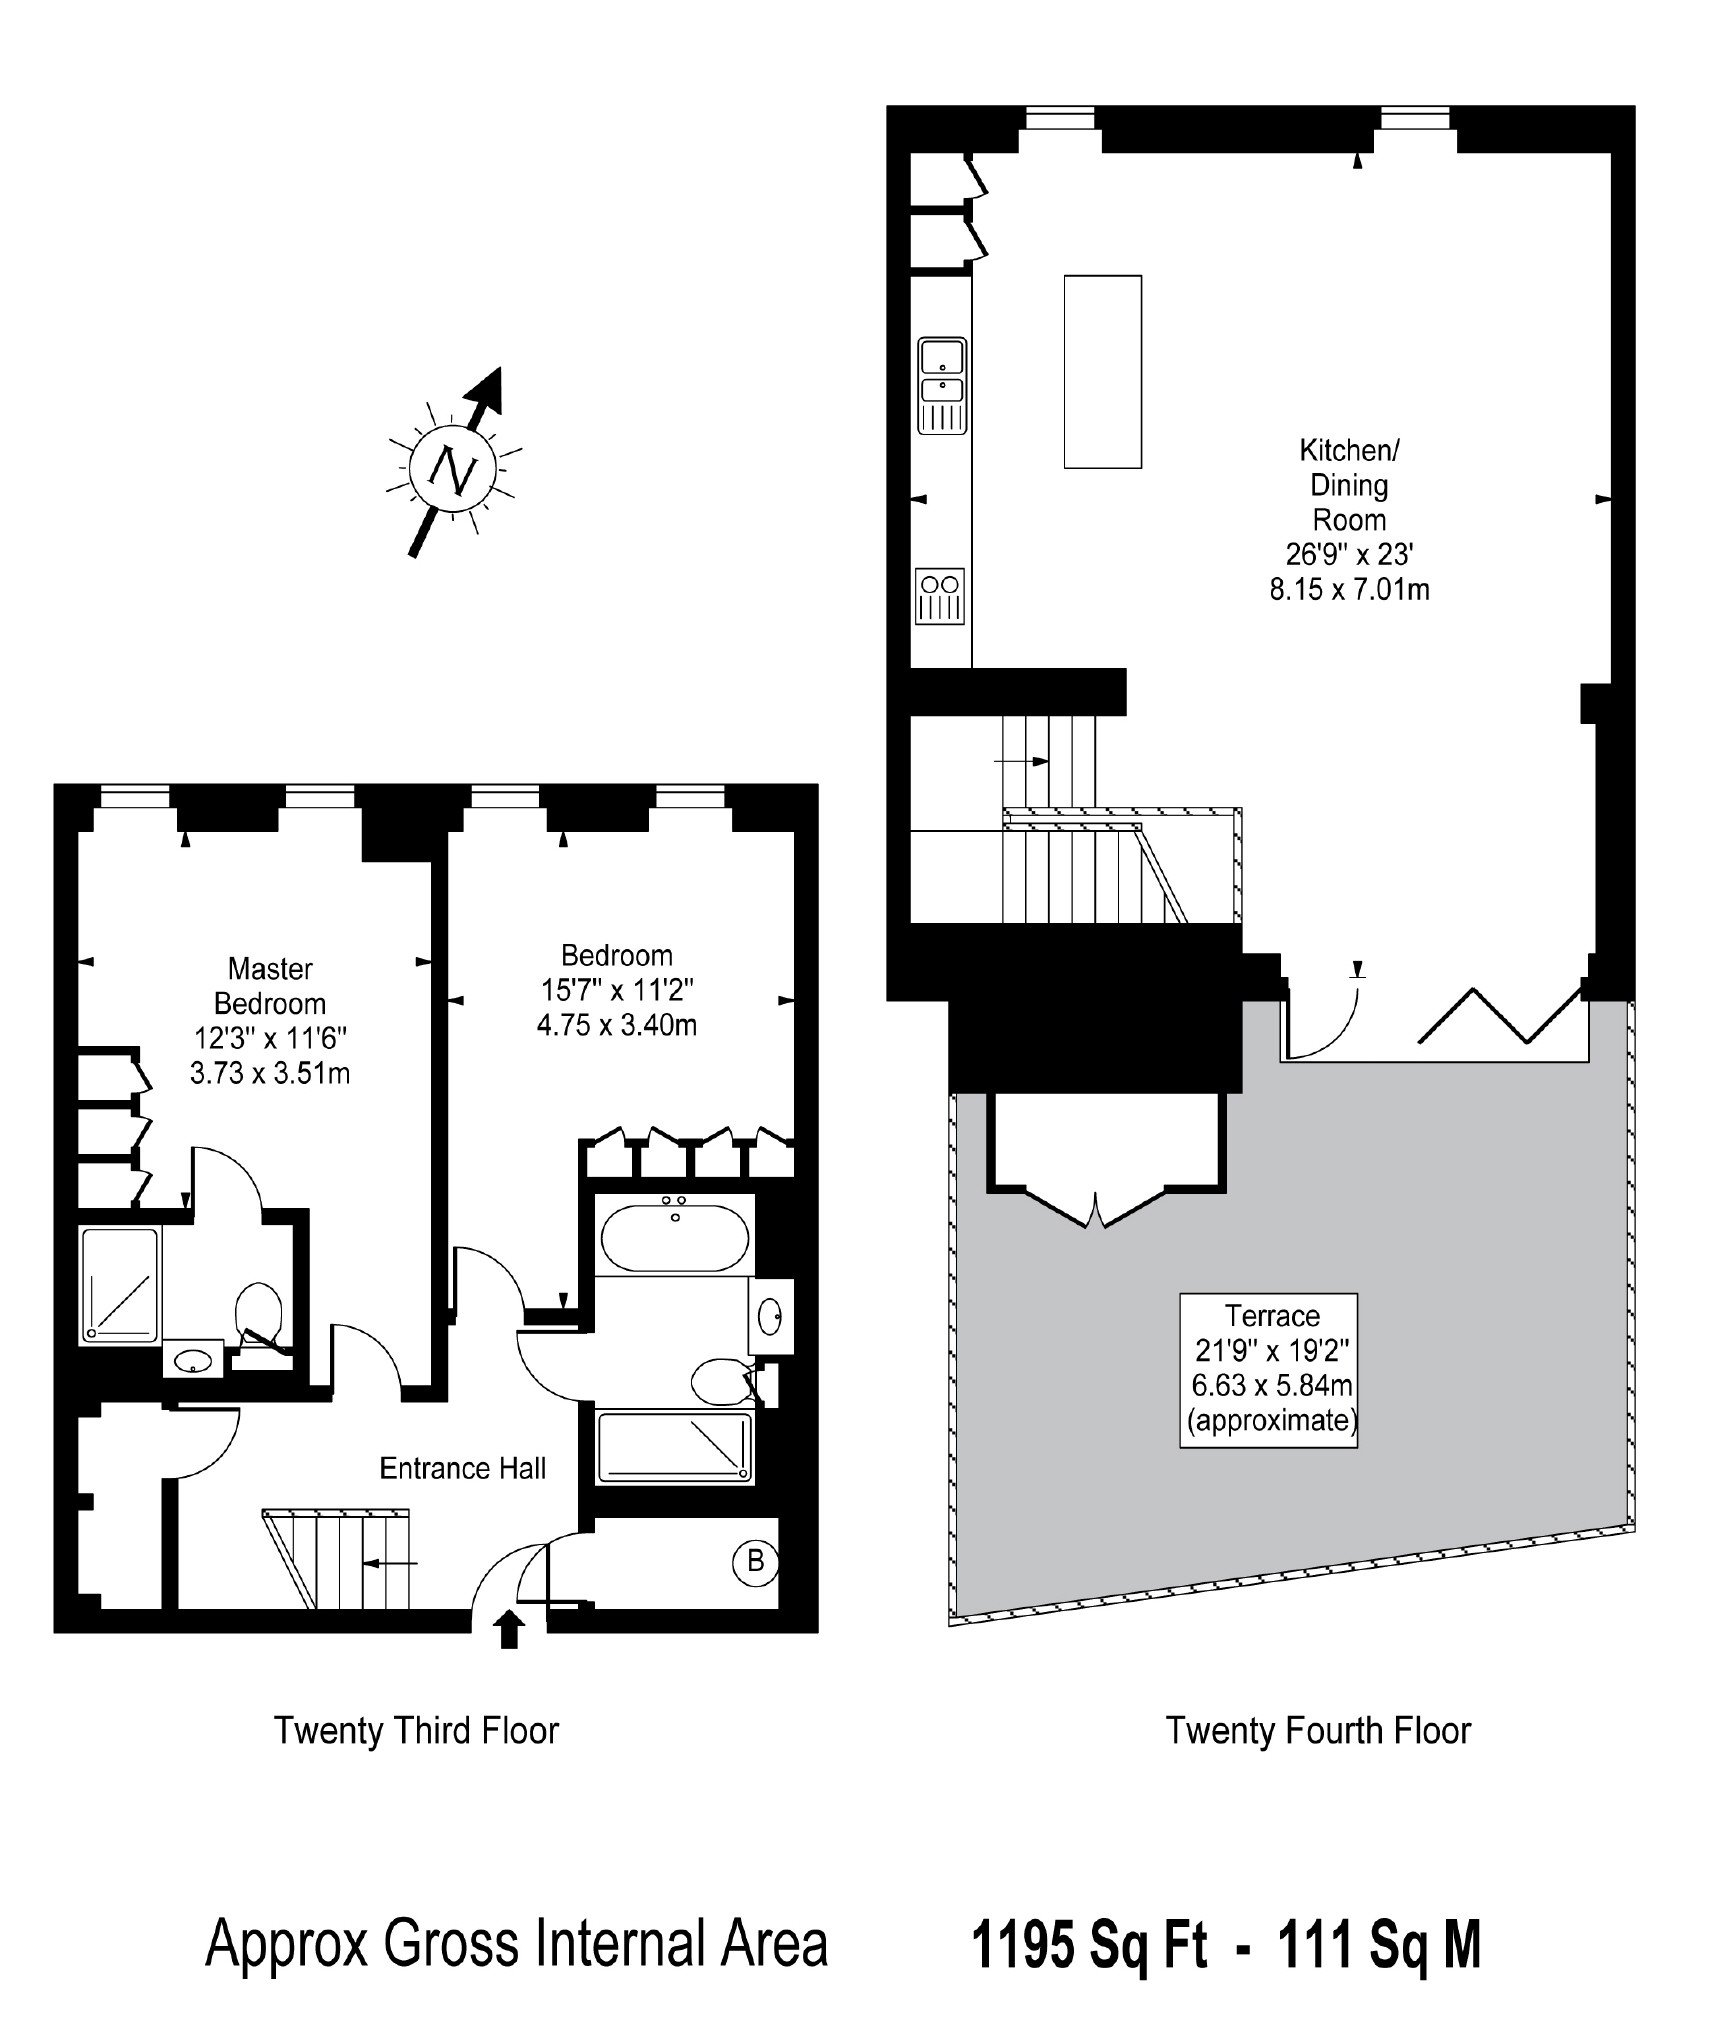 Sclater Street, London, E1 floorplan